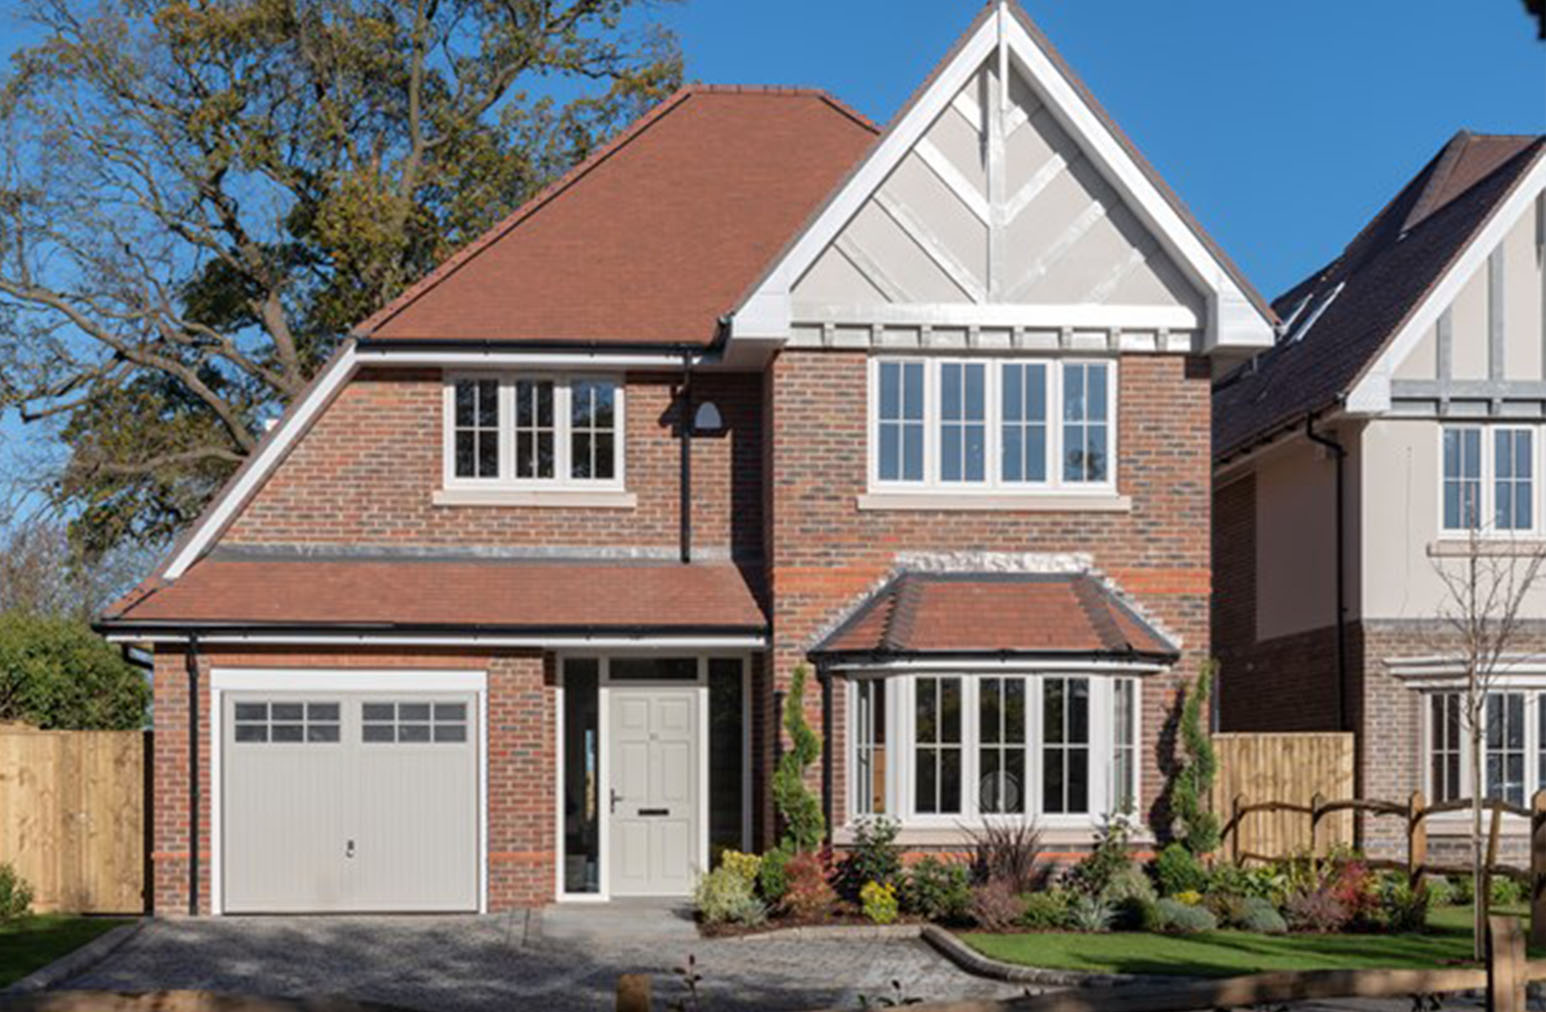 shanty homes - detached family homes - developers